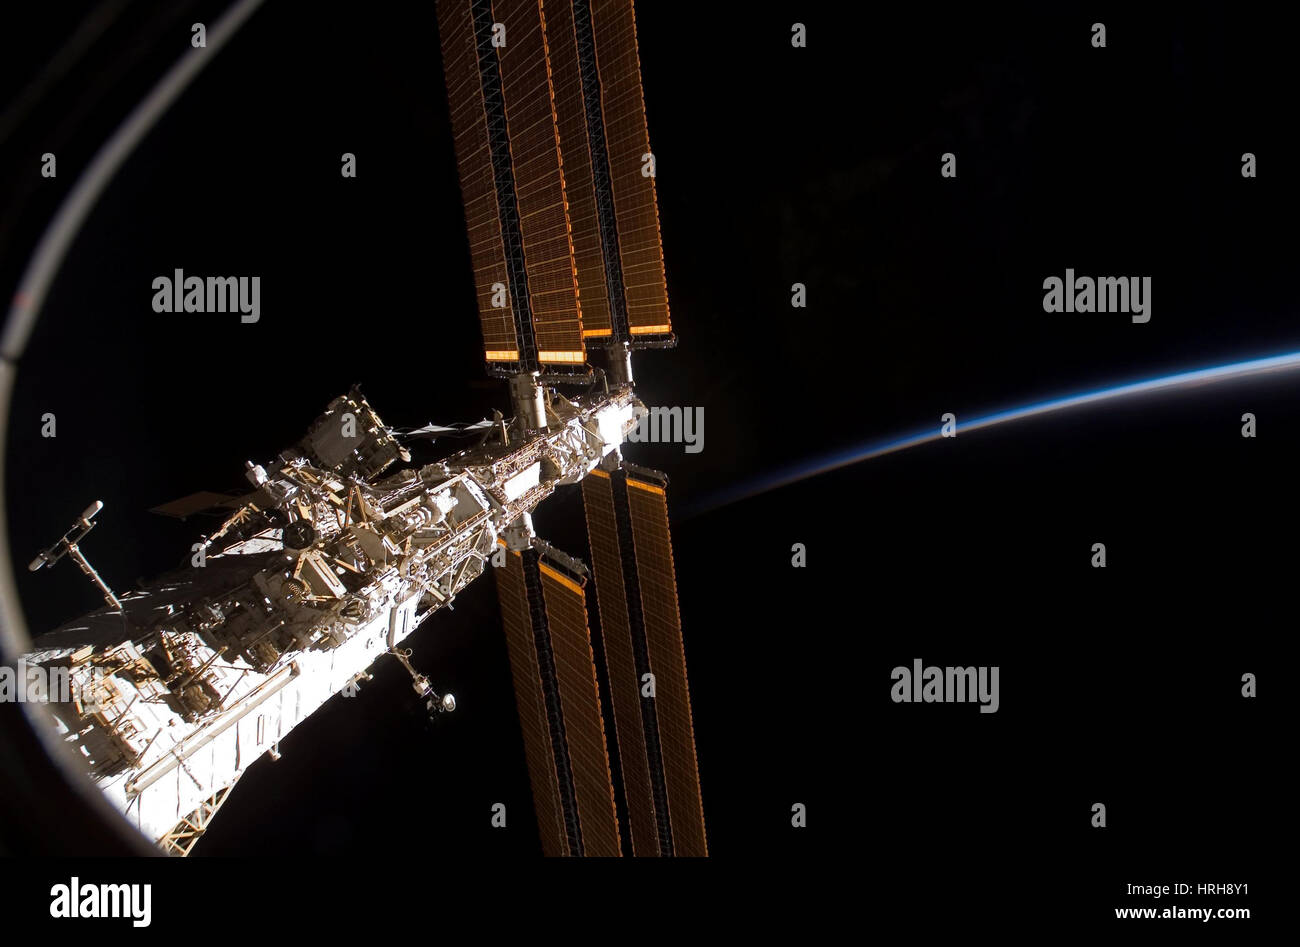 STS-122, internationale Raumstation, 2008 Stockbild